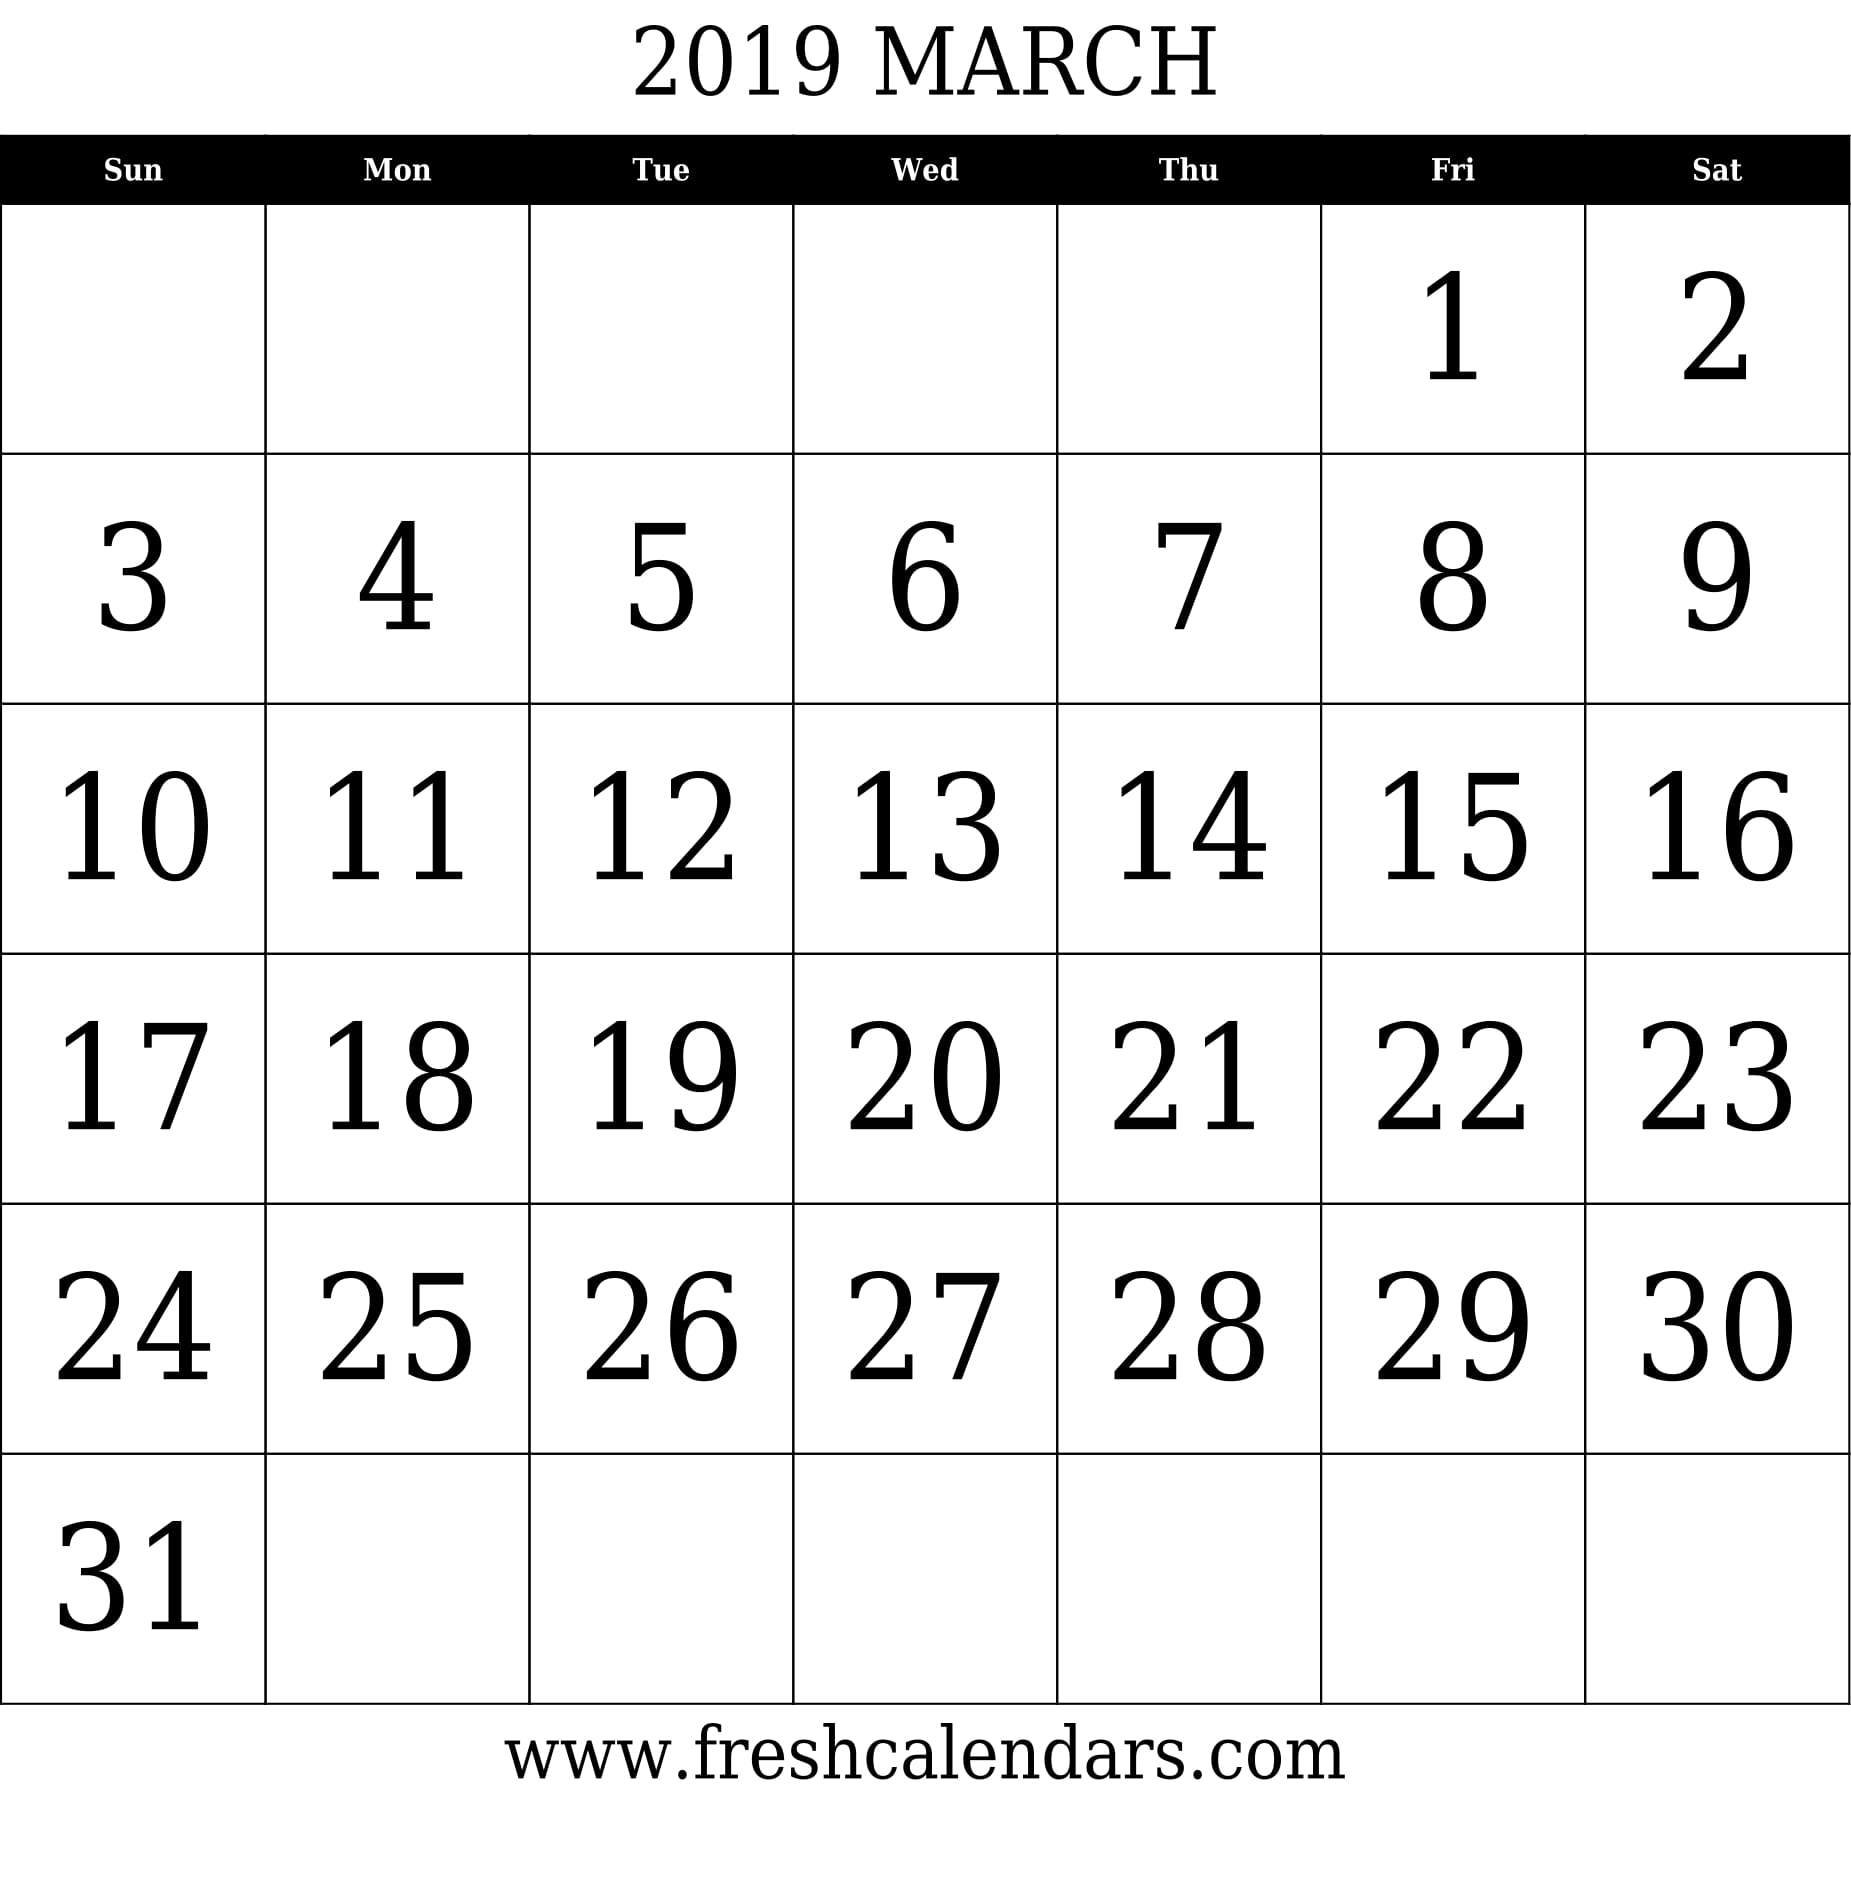 March 2019 Calendar With Large Dates